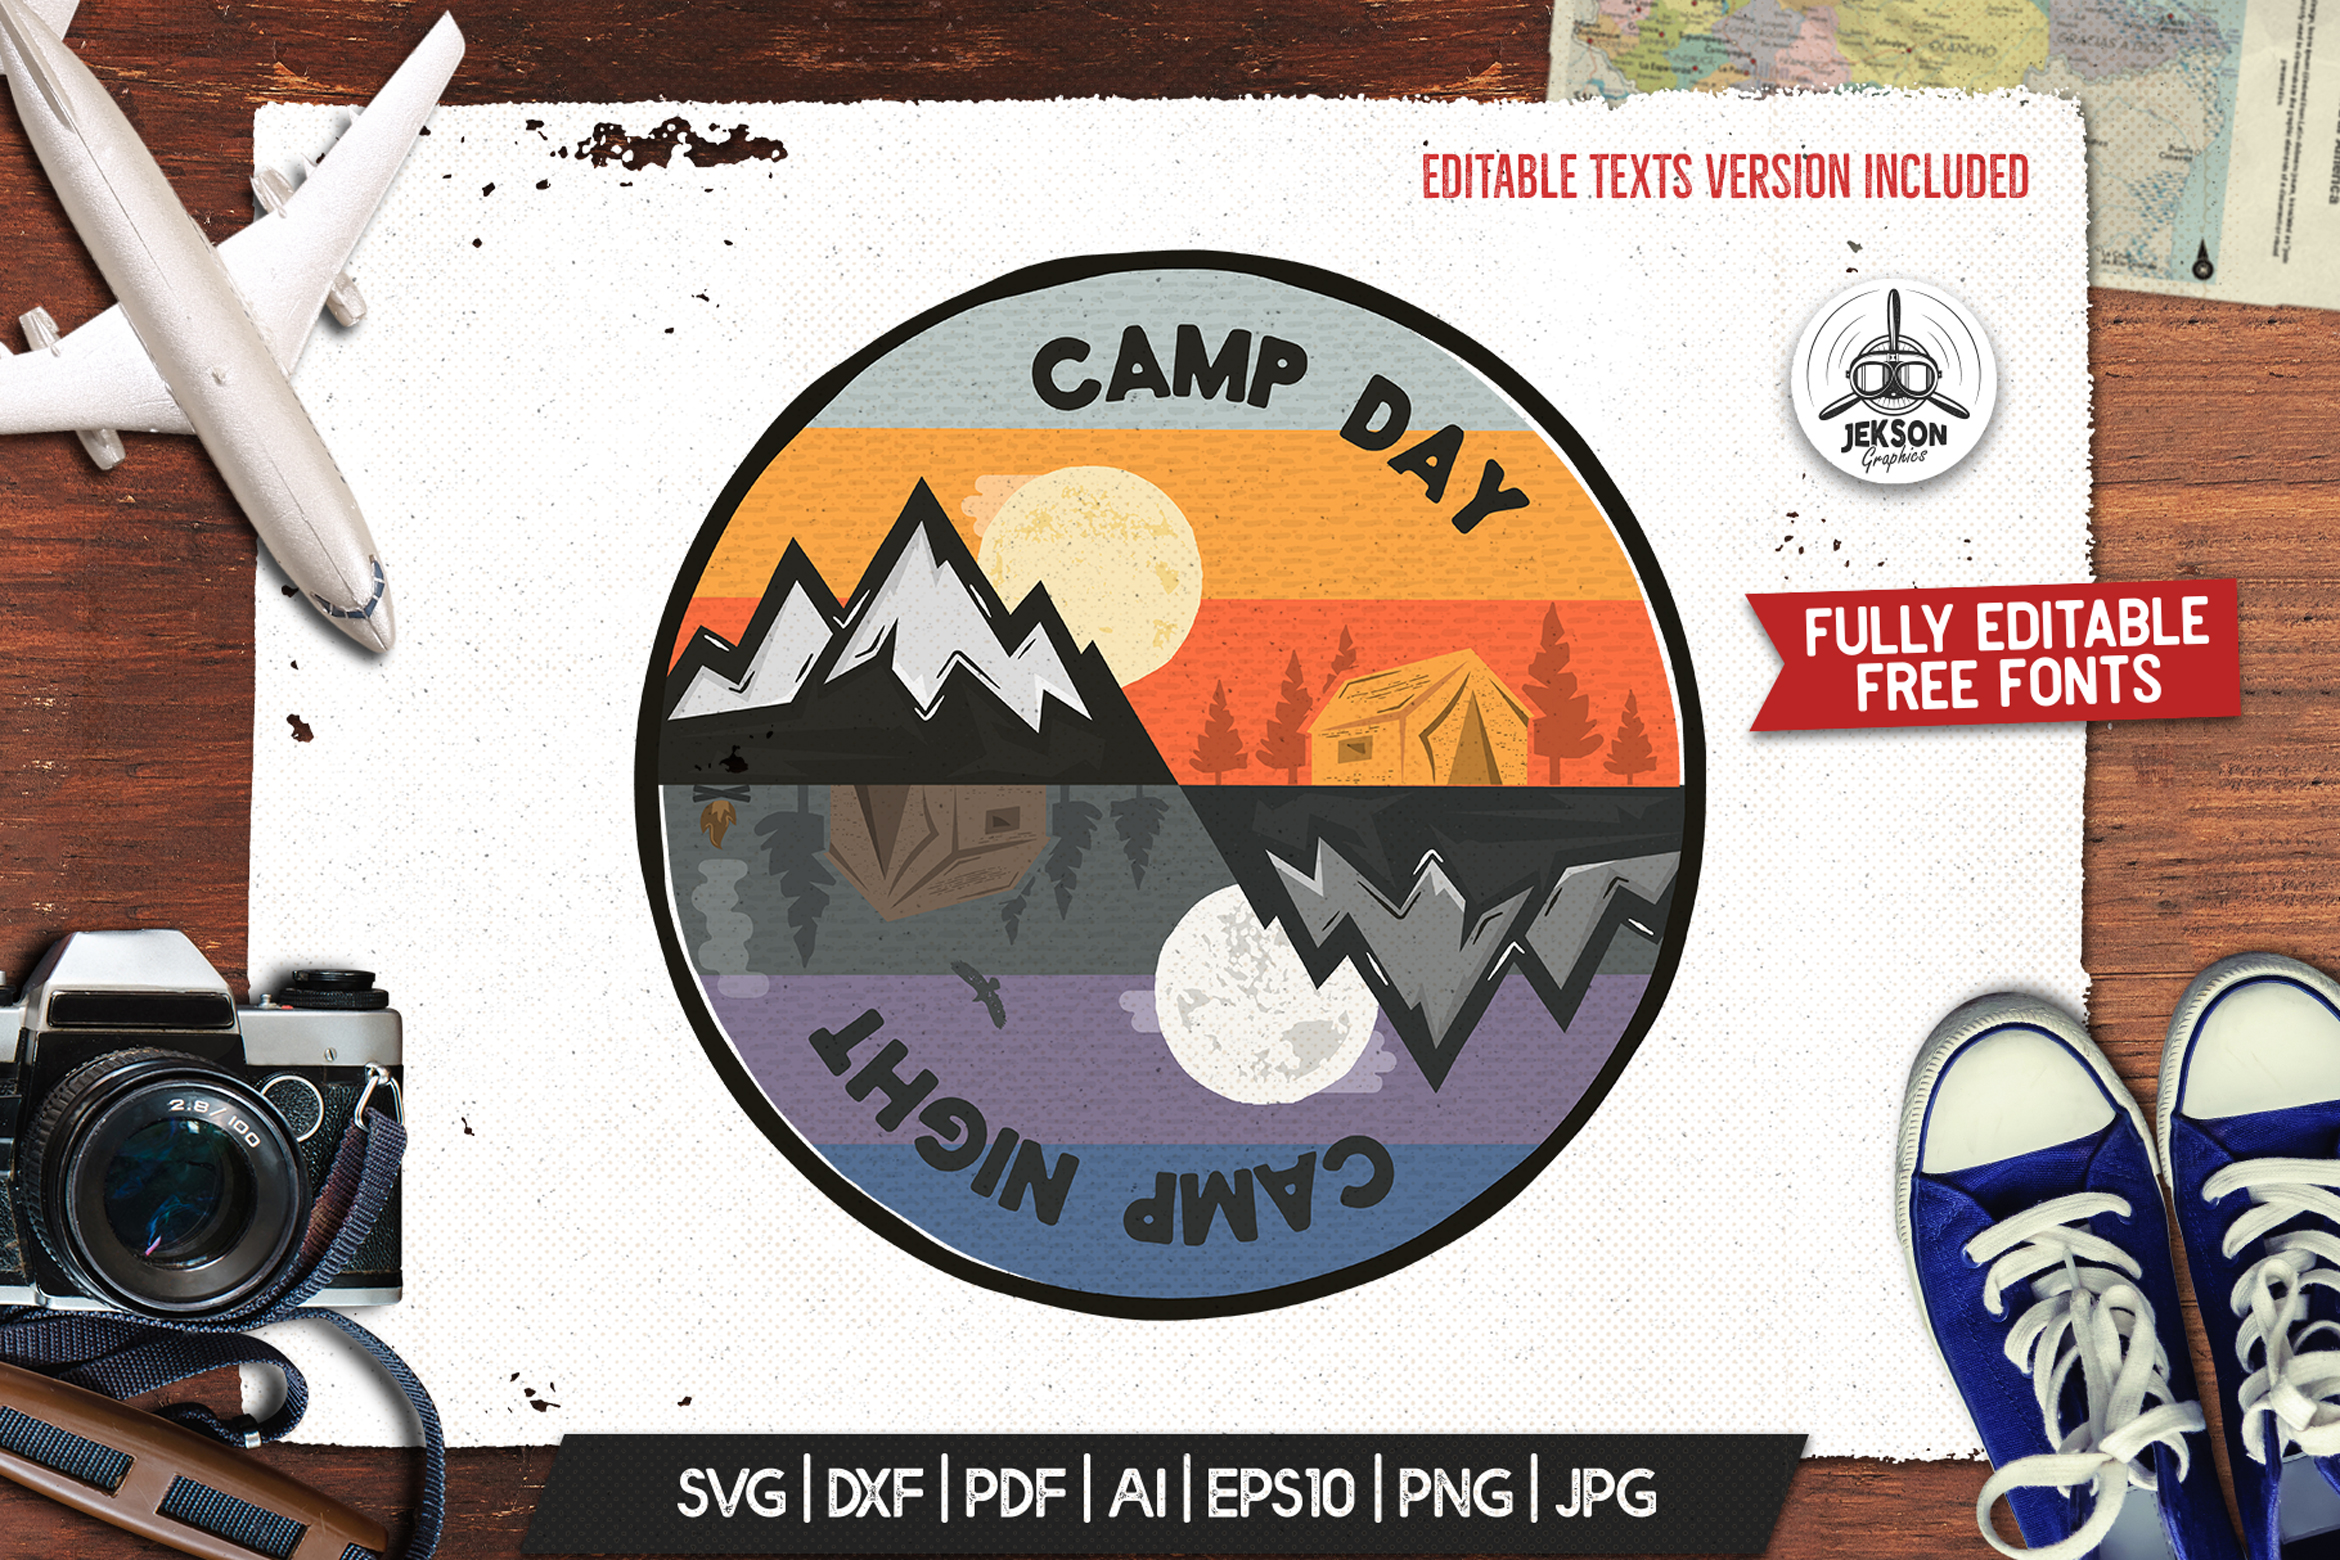 Camp Day Camping Night Adventure Logo Graphic By Jeksongraphics Creative Fabrica